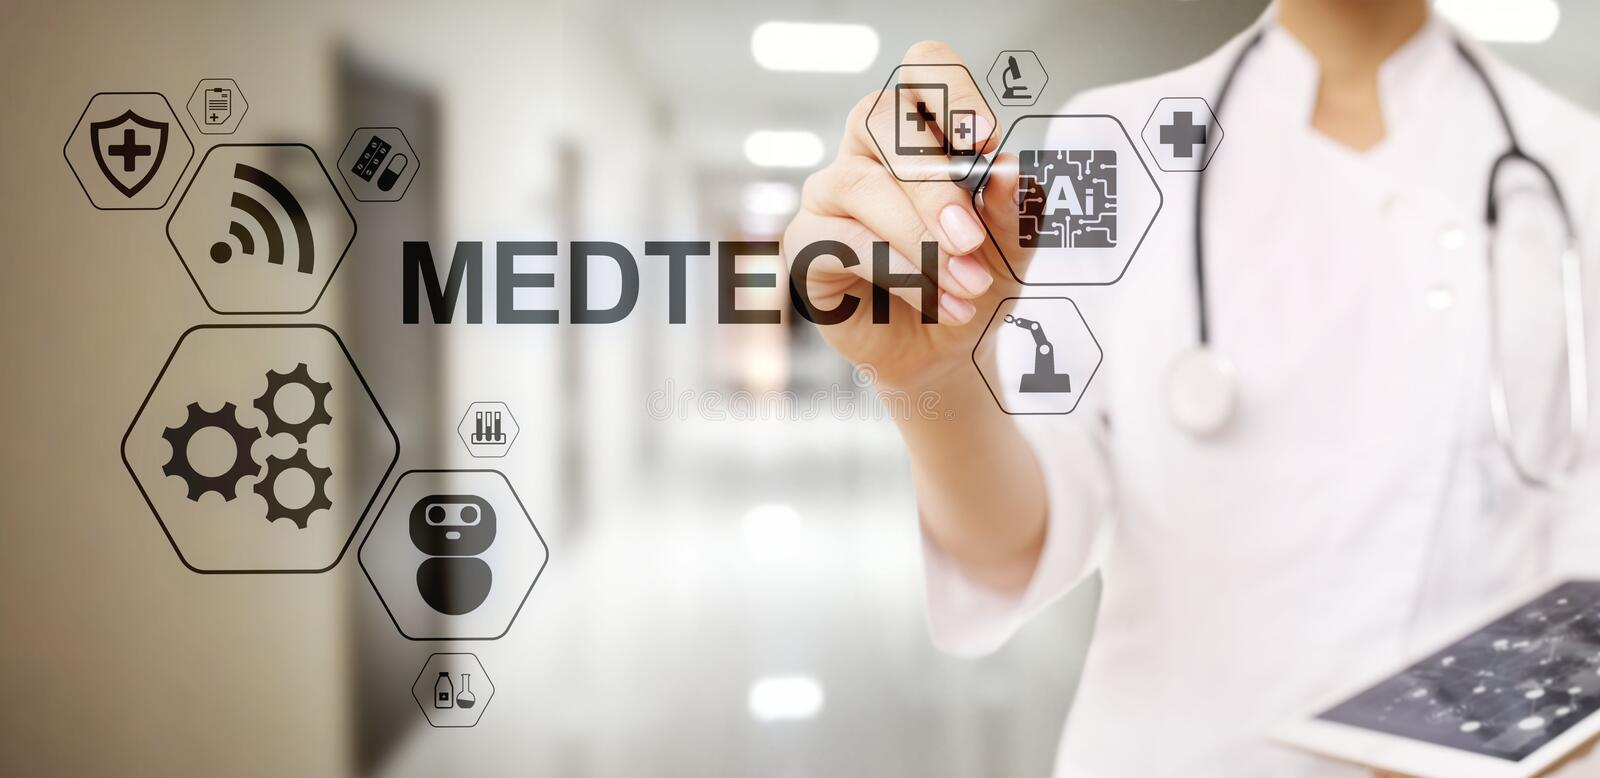 Medtech medical technology information integration internet big data concept on virtual screen. Doctor with stethoscope. vector illustration